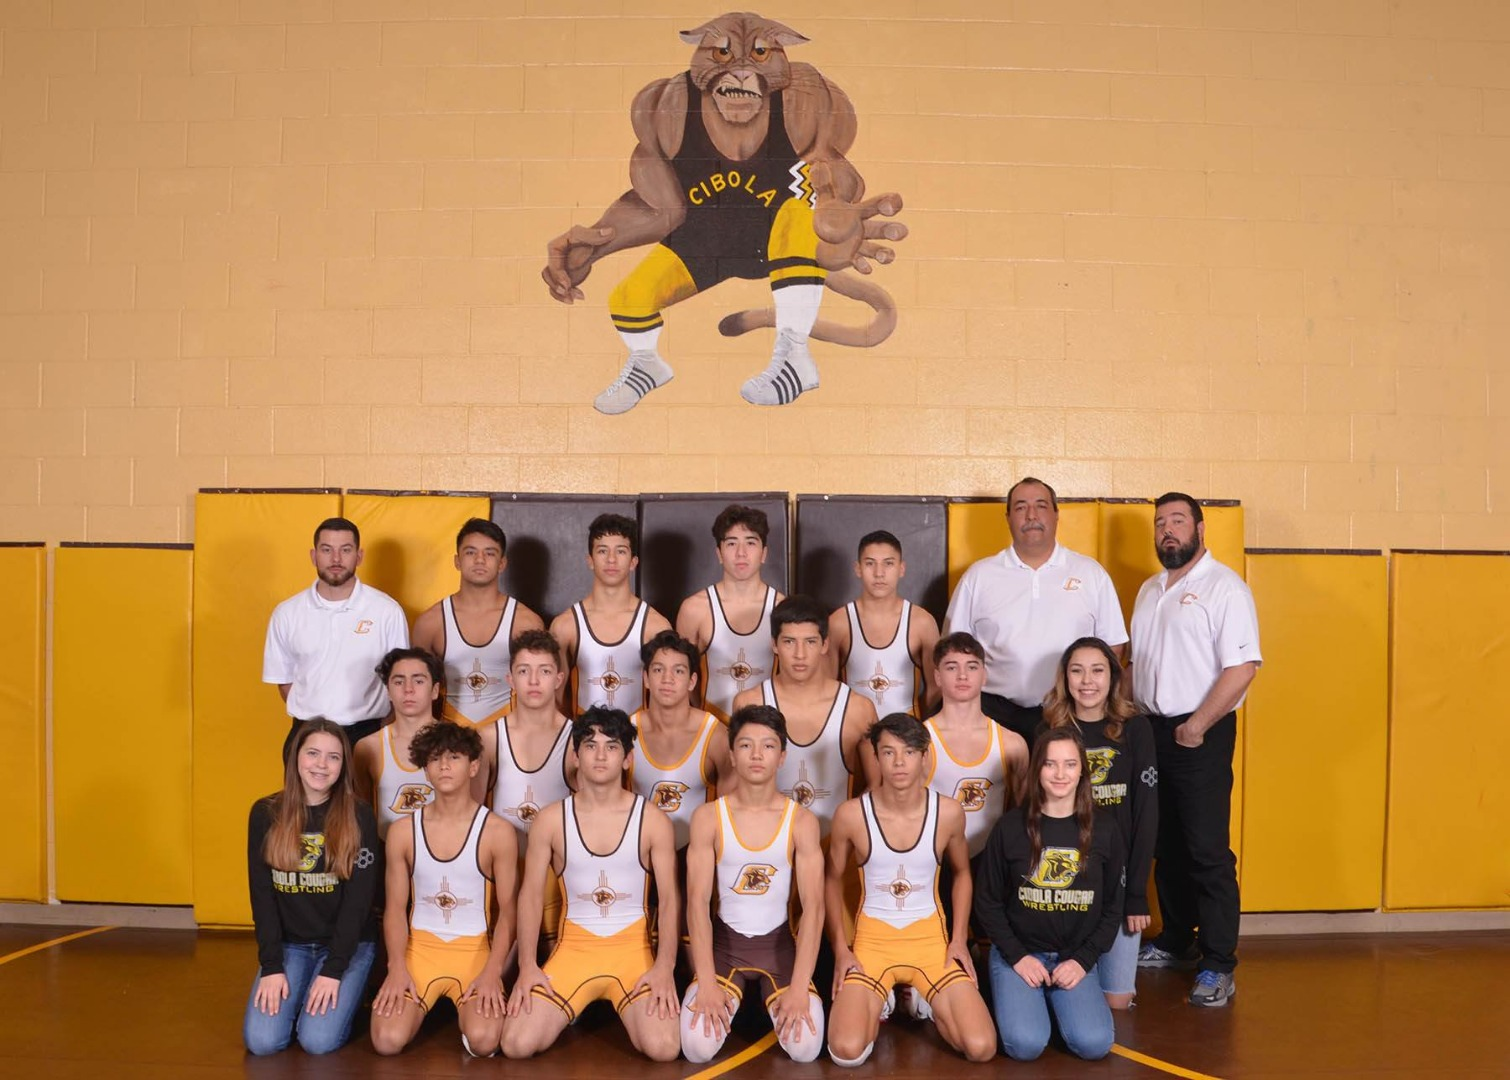 Group photo of wrestling team